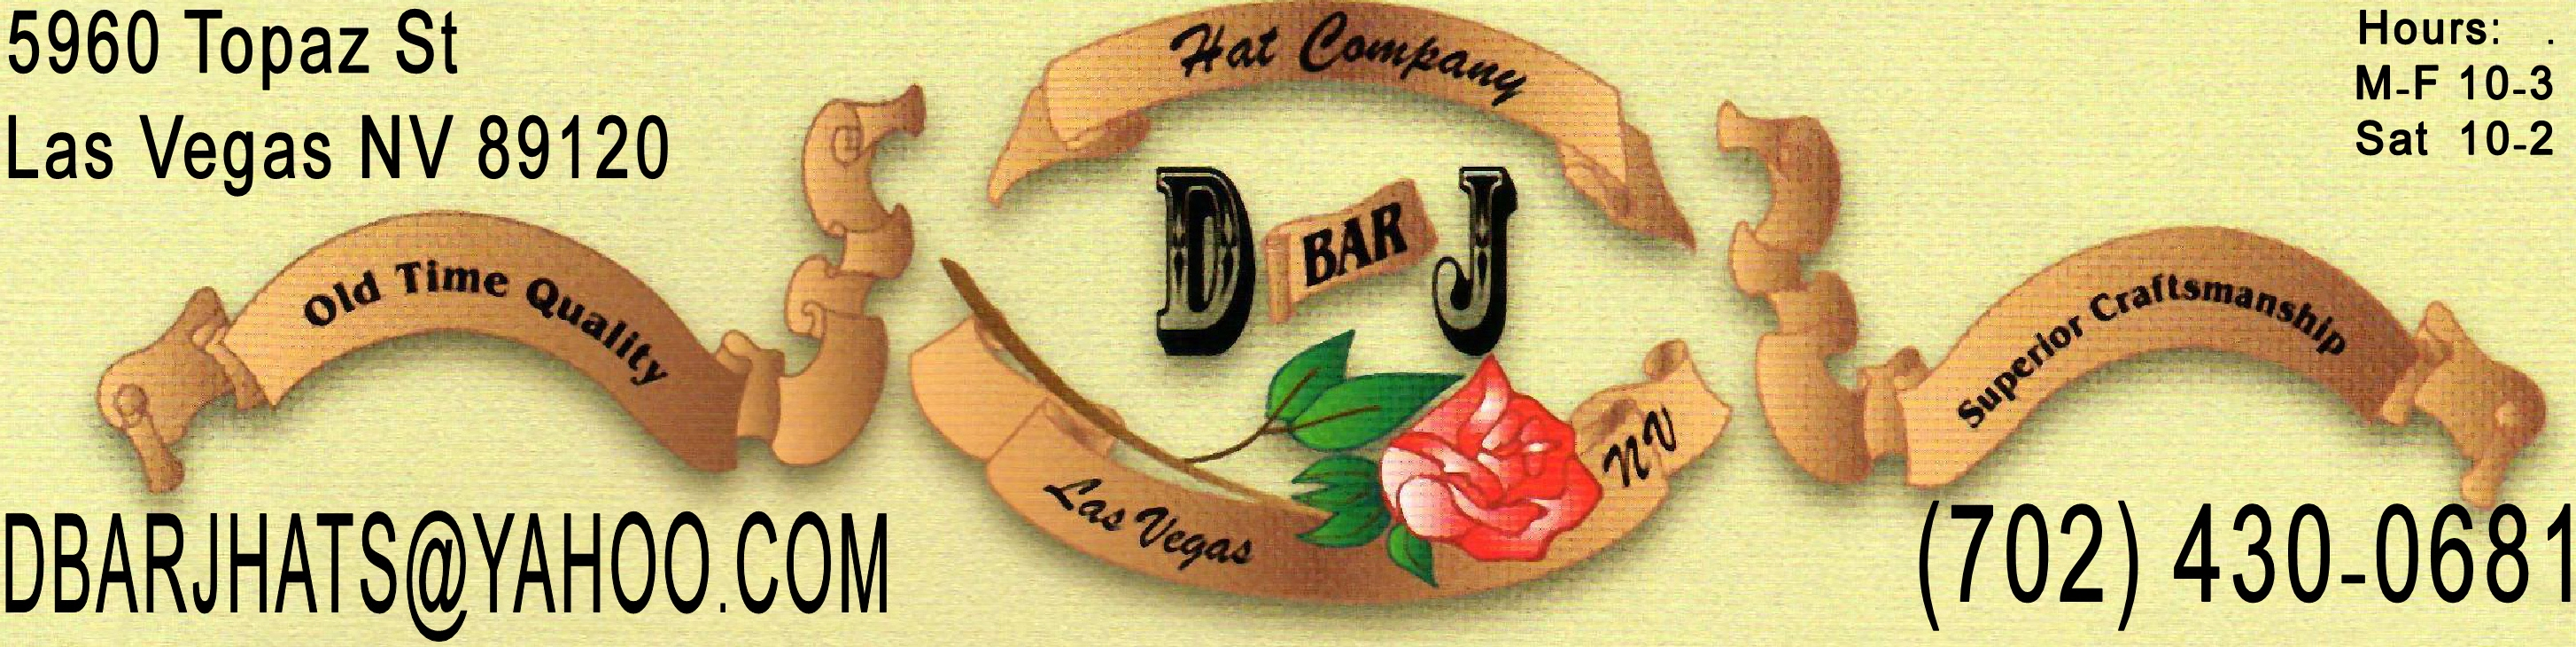 D bar J Hat Co